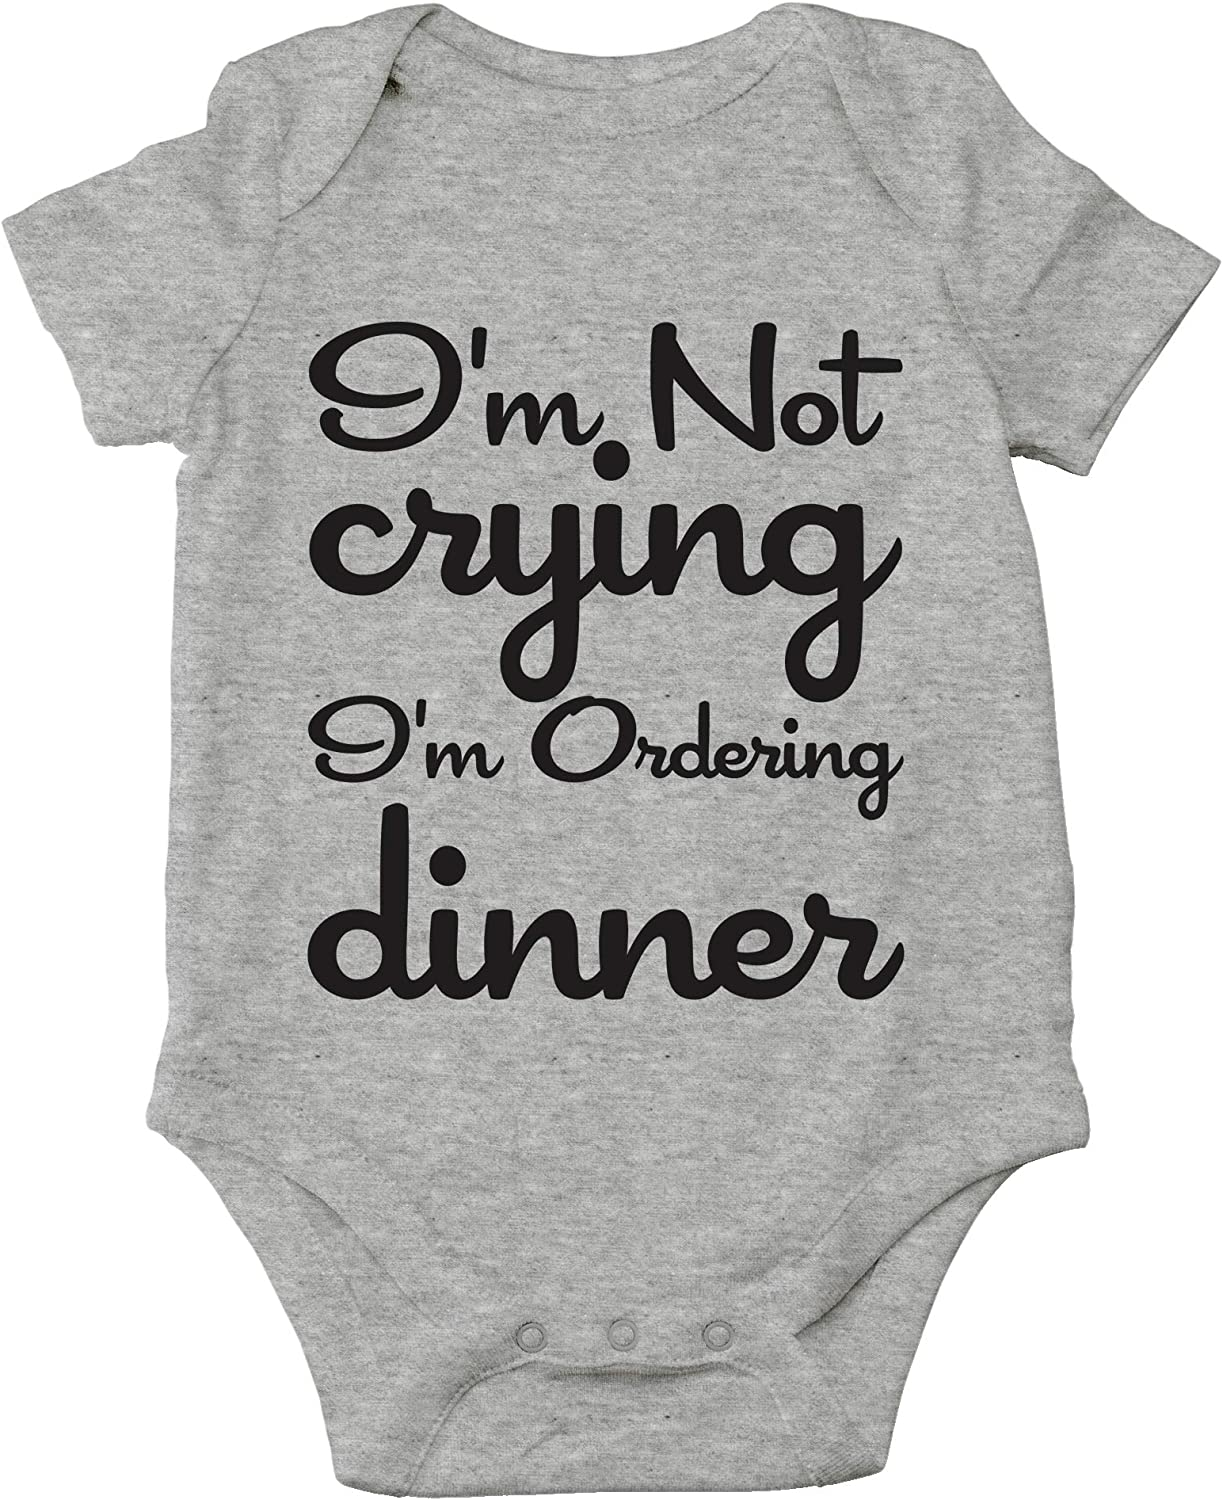 AW Fashions I'm Not Crying, I'm Ordering Dinner Cute Novelty Funny Infant One-Piece Baby Bodysuit